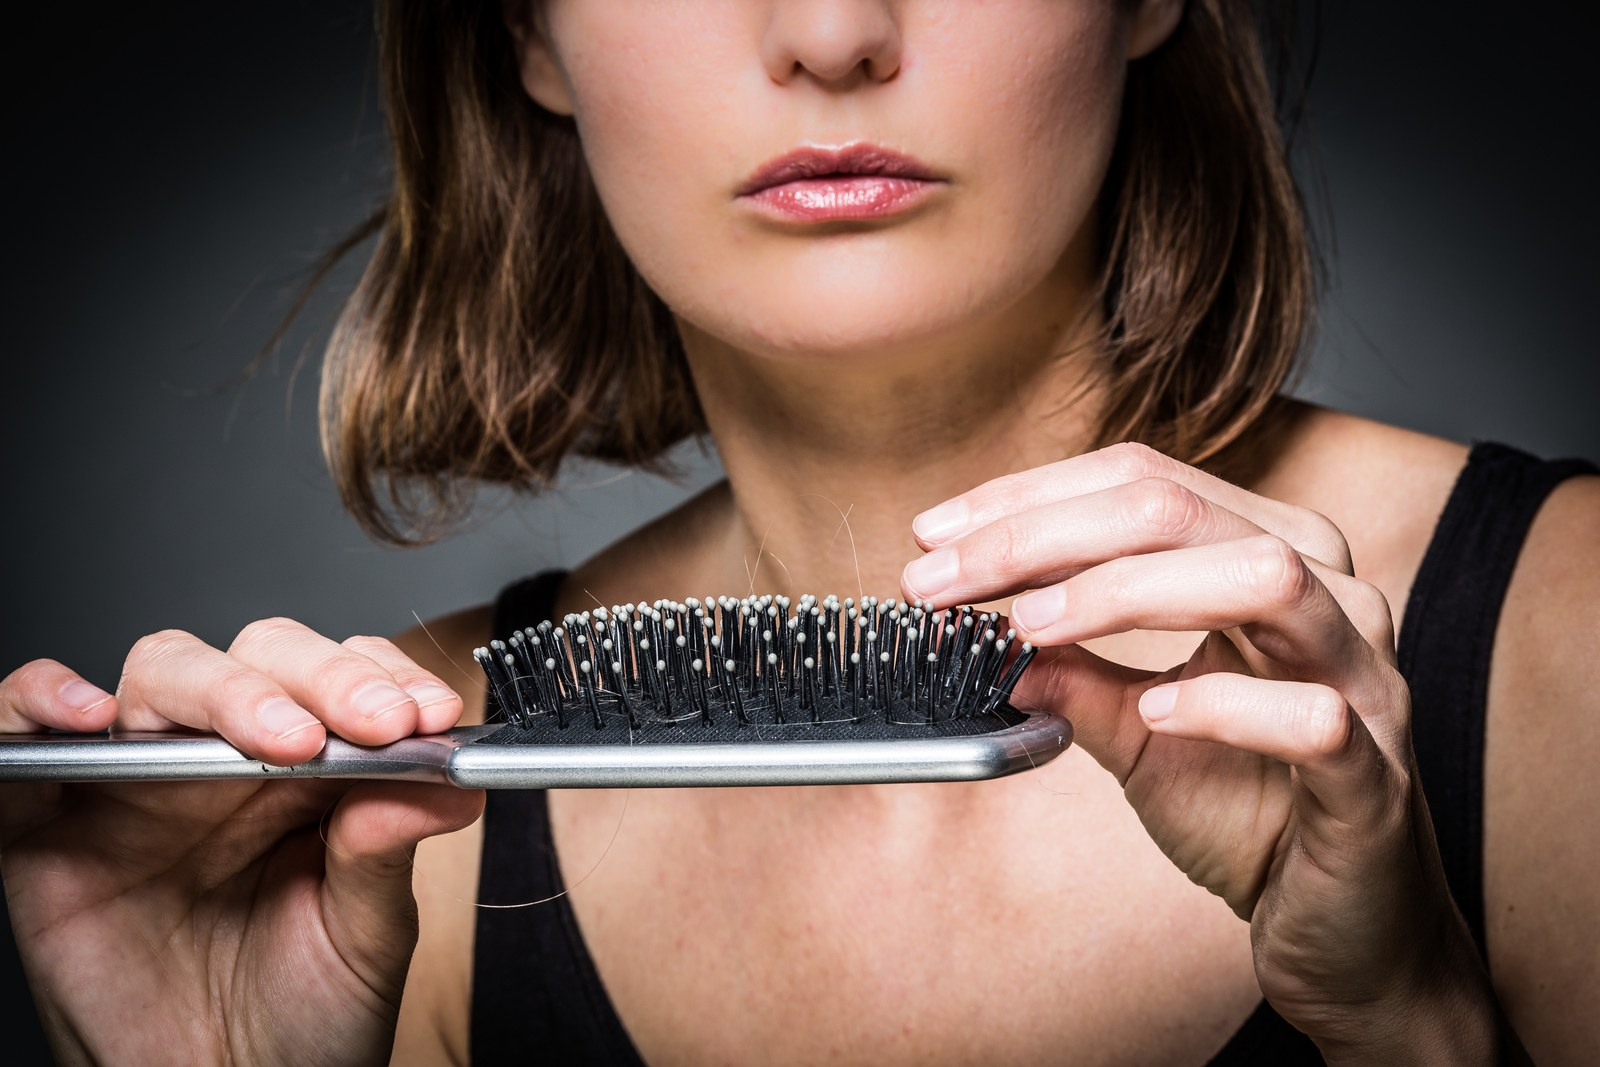 Sometimes shedding hair can be one of the significant major problems for many people